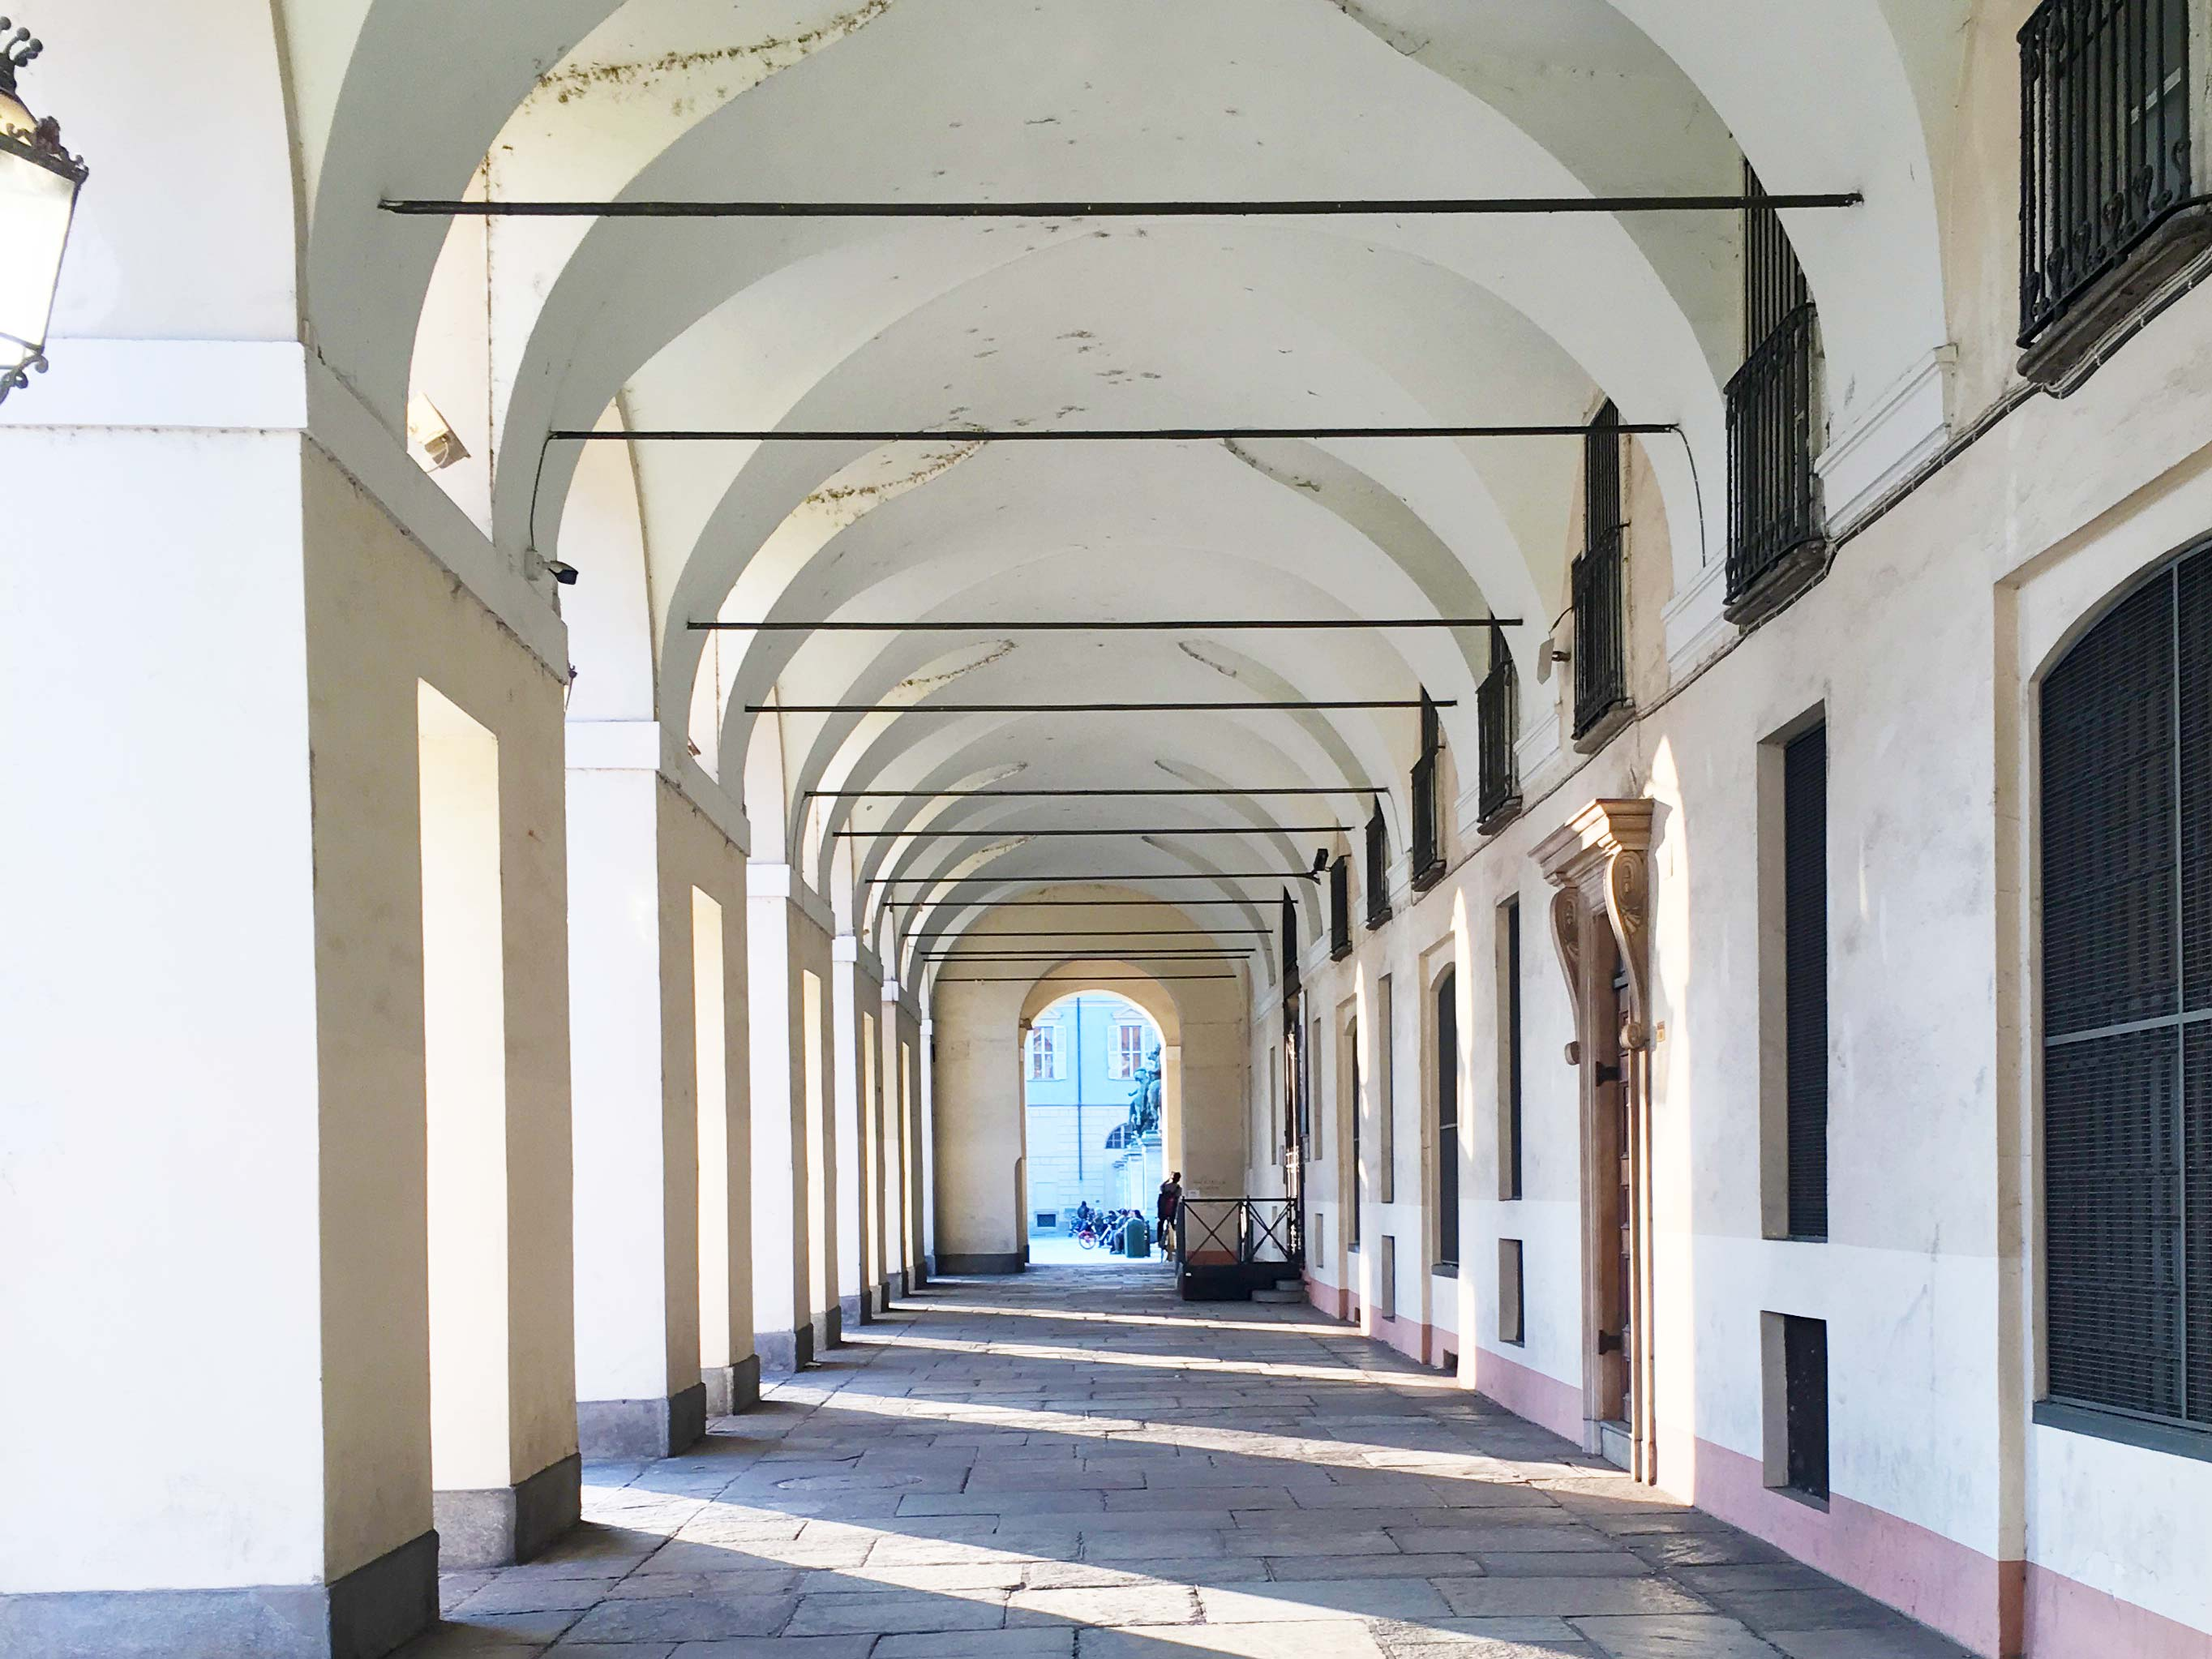 Archways in Turin Italy